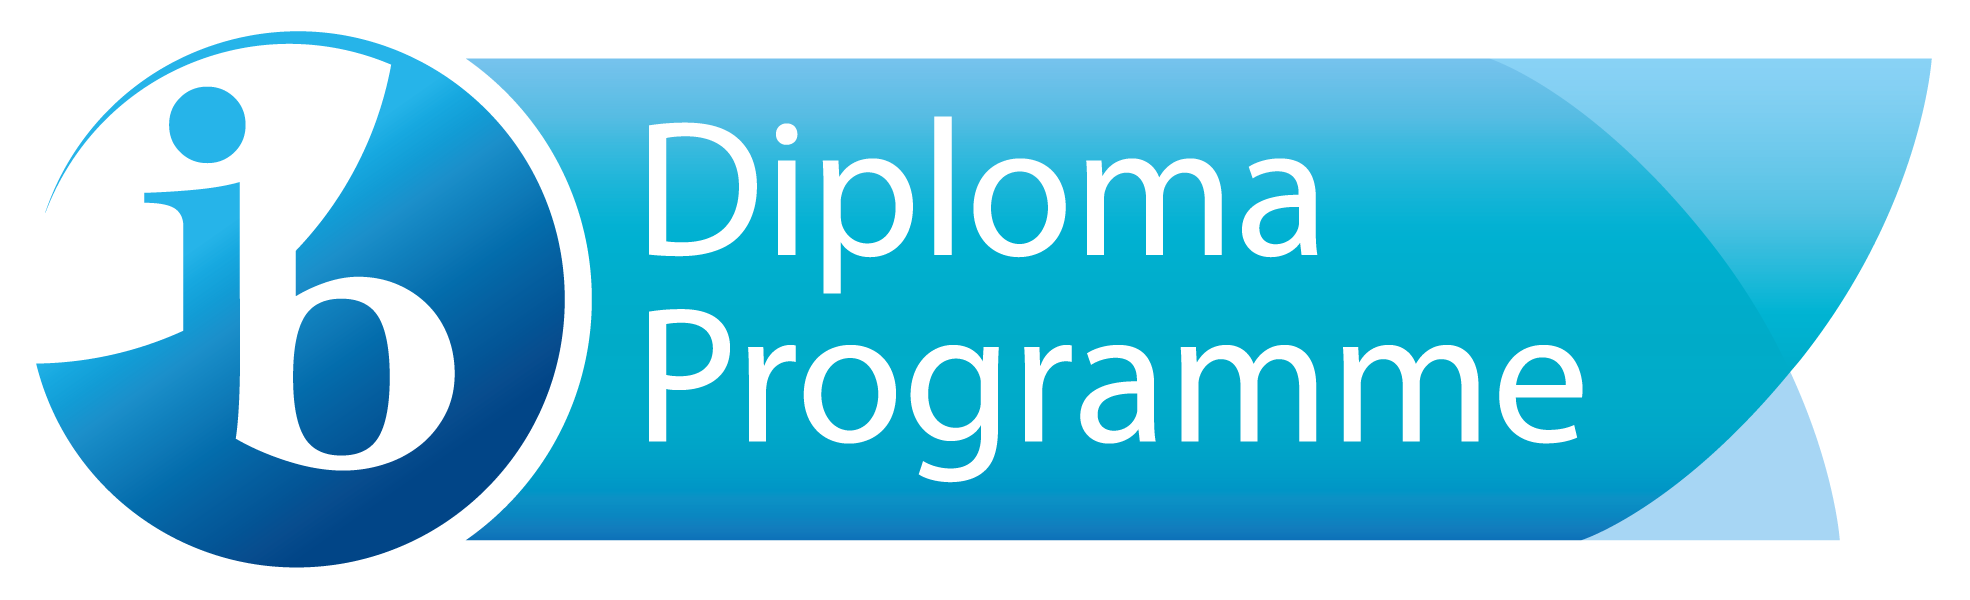 Attention Sophomores!  The IB Diploma and Career-related Program Application is now open for the AHS Class of 2023! Image